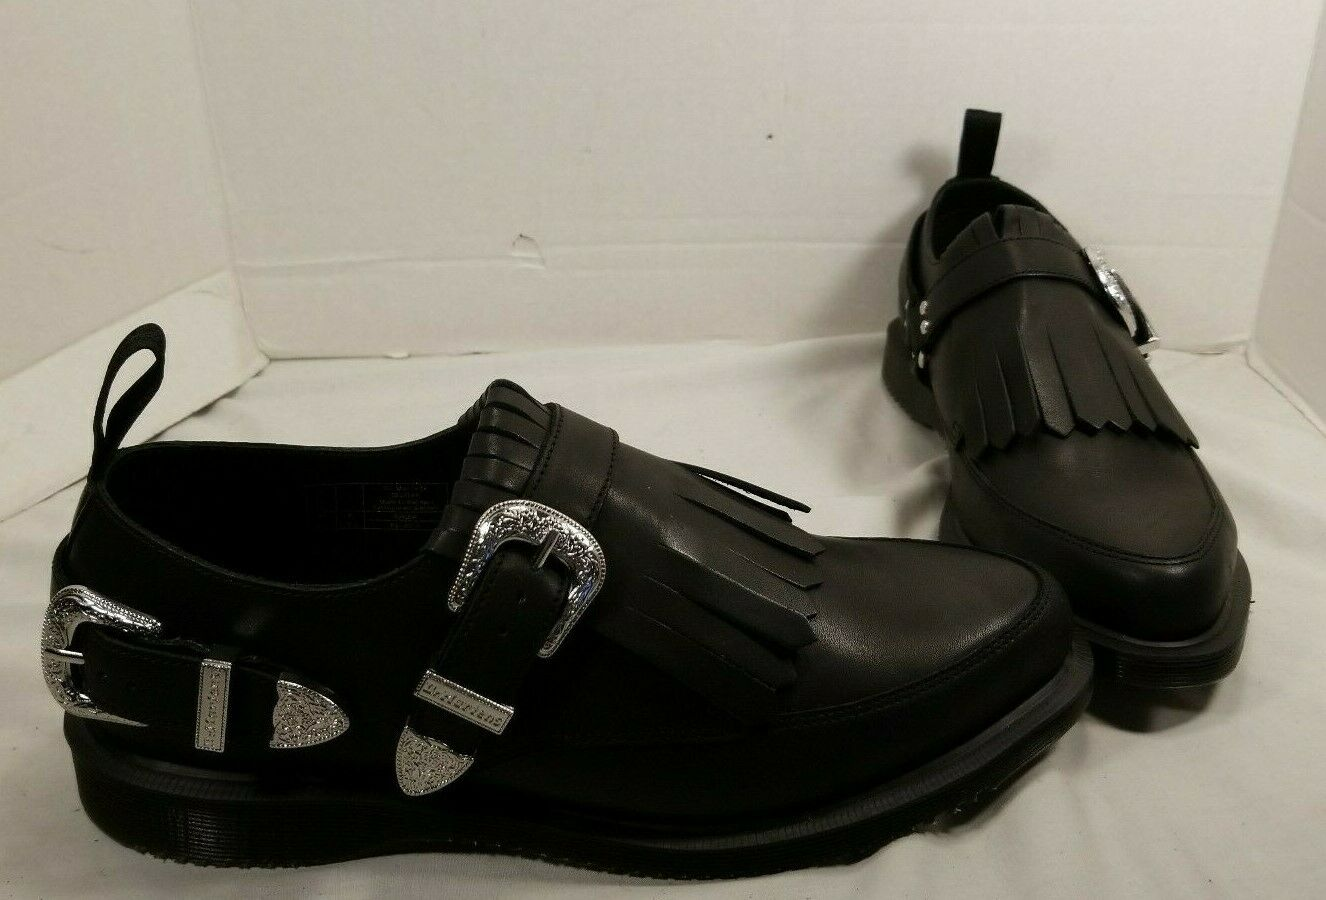 NEW WOMEN'S DR. MARTENS DELYLAH BLACK TEMPERLEY LEATHER SHOES SIZE US 9 EUR 41